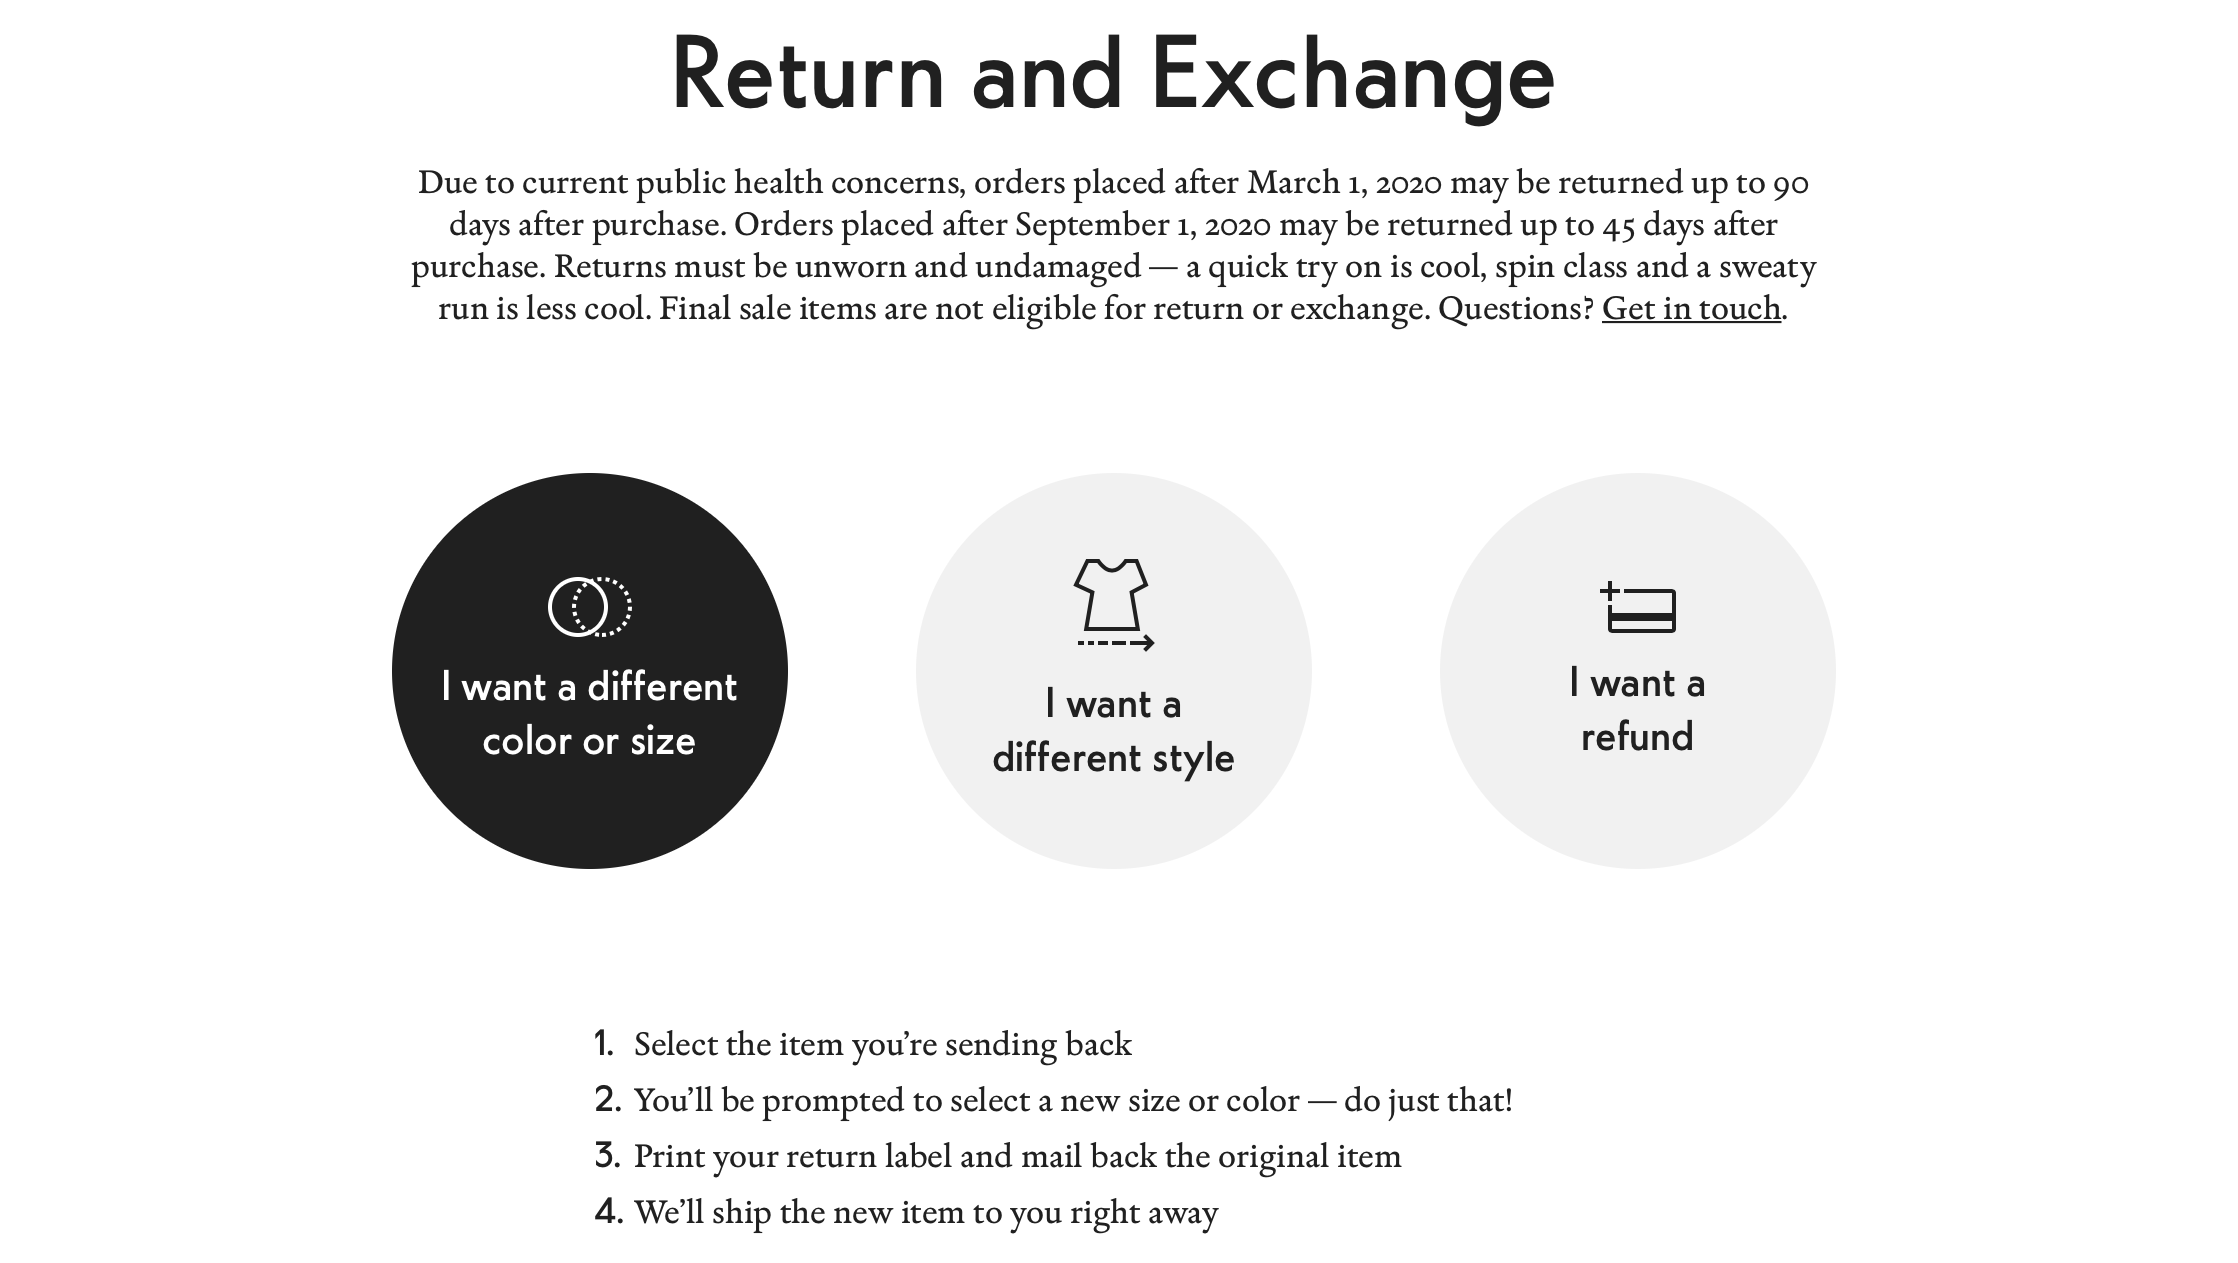 Outdoor voices' easy Return & Exchange process